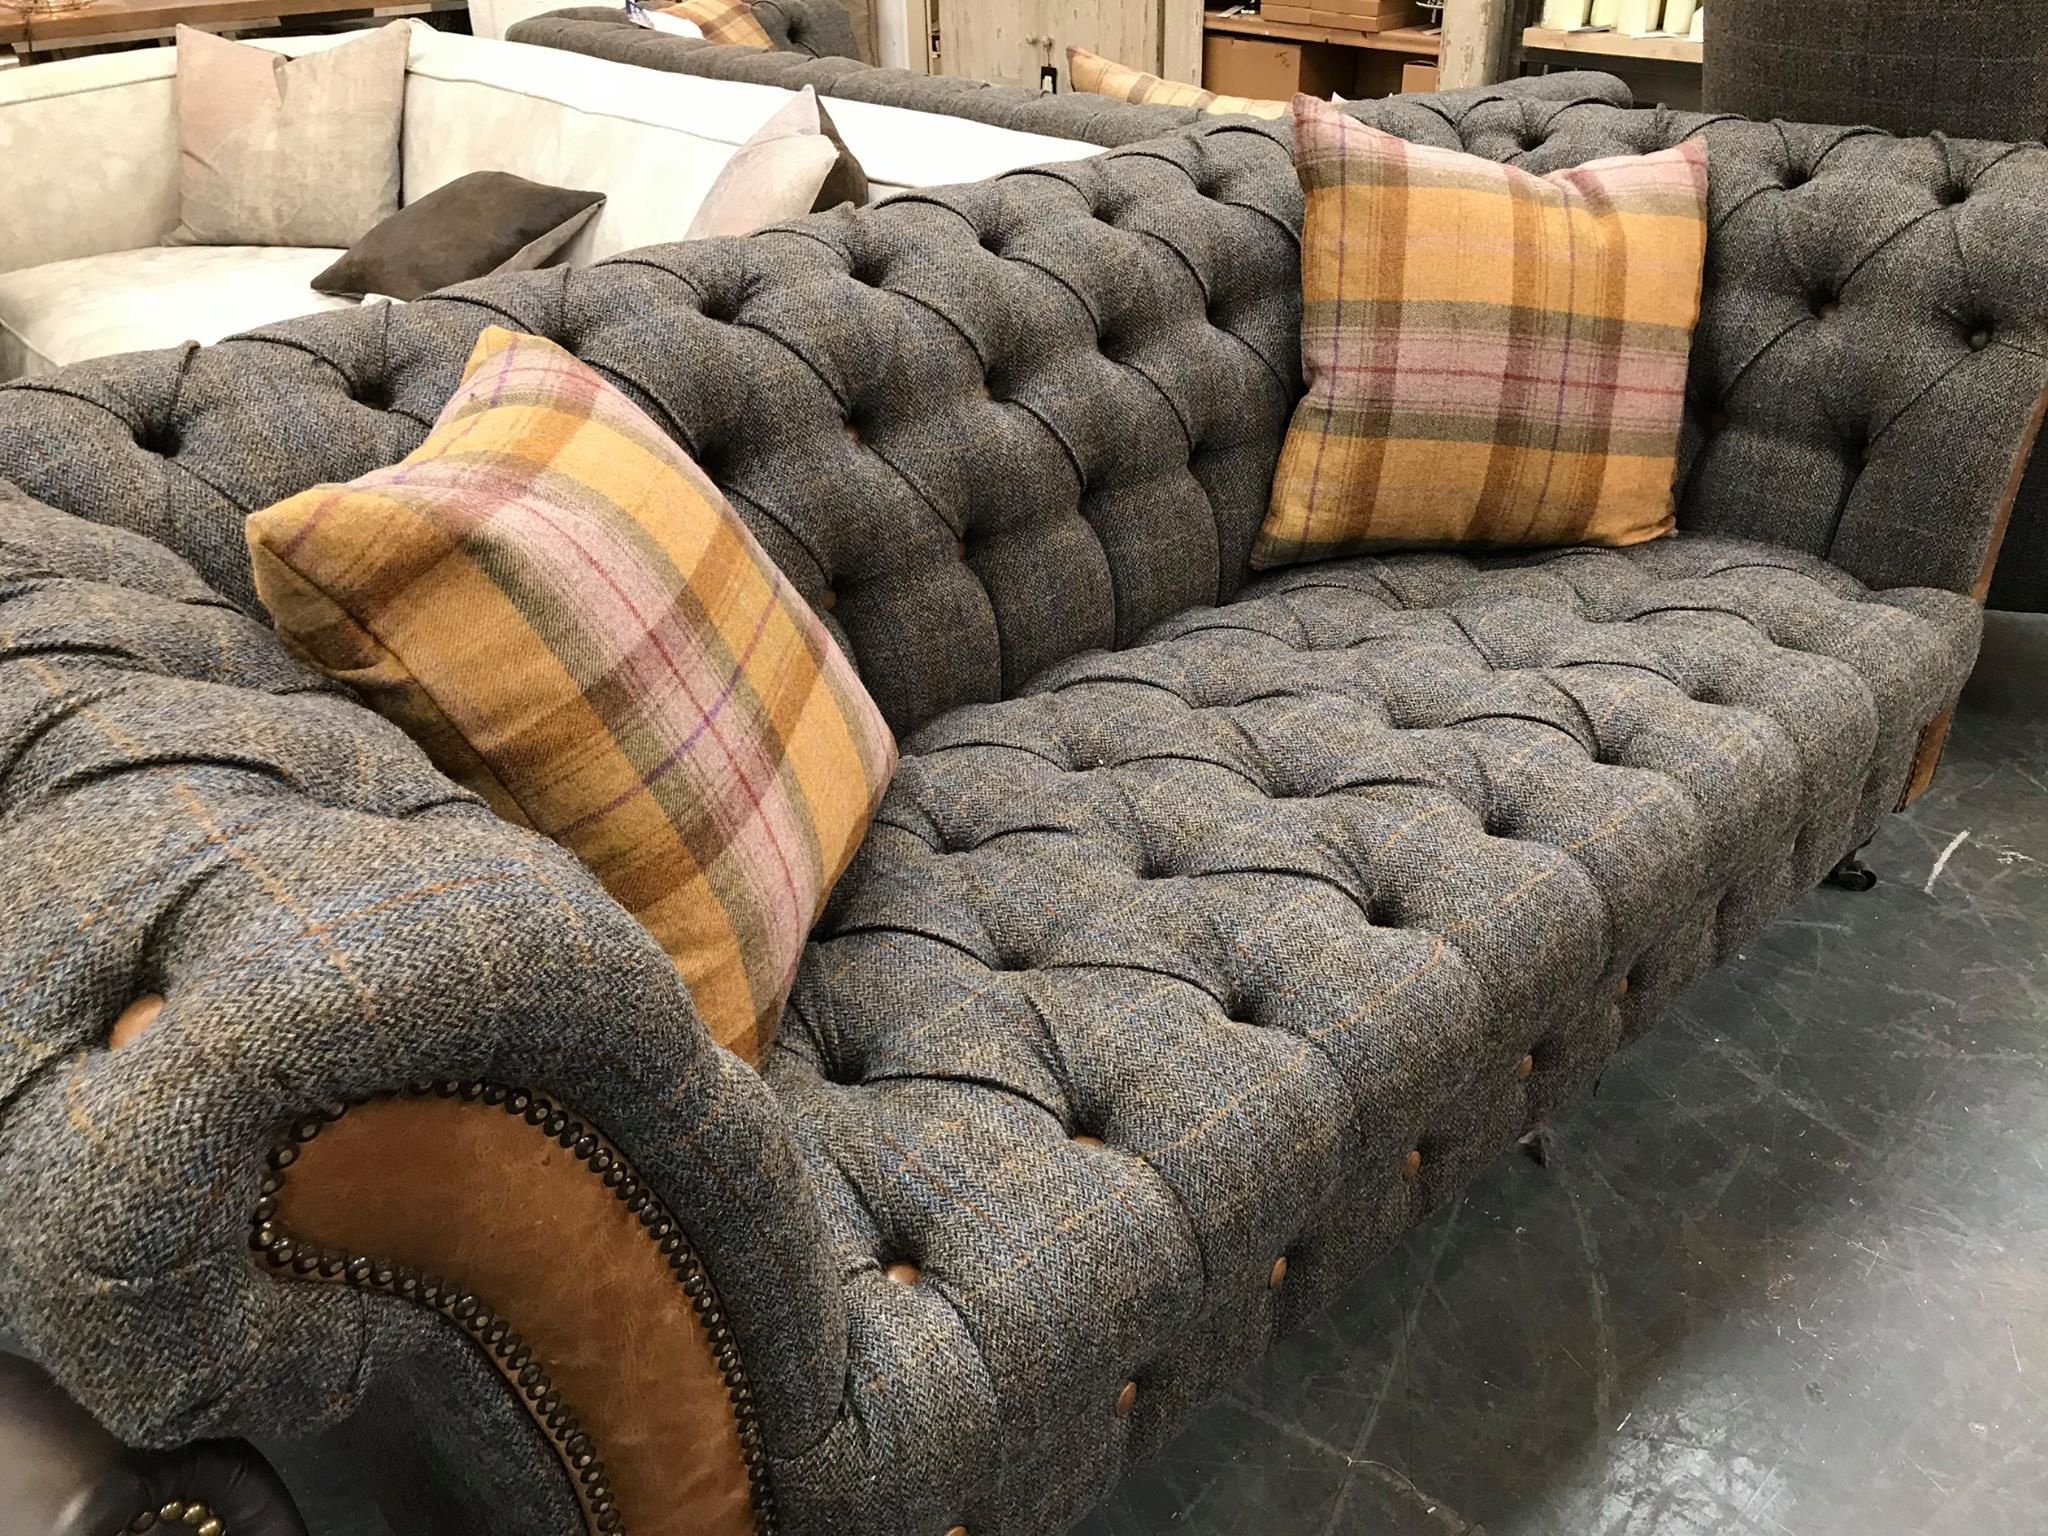 Sofa Outlet Cheshire Call Into The Store To See The Full Range Of Sofas We Have